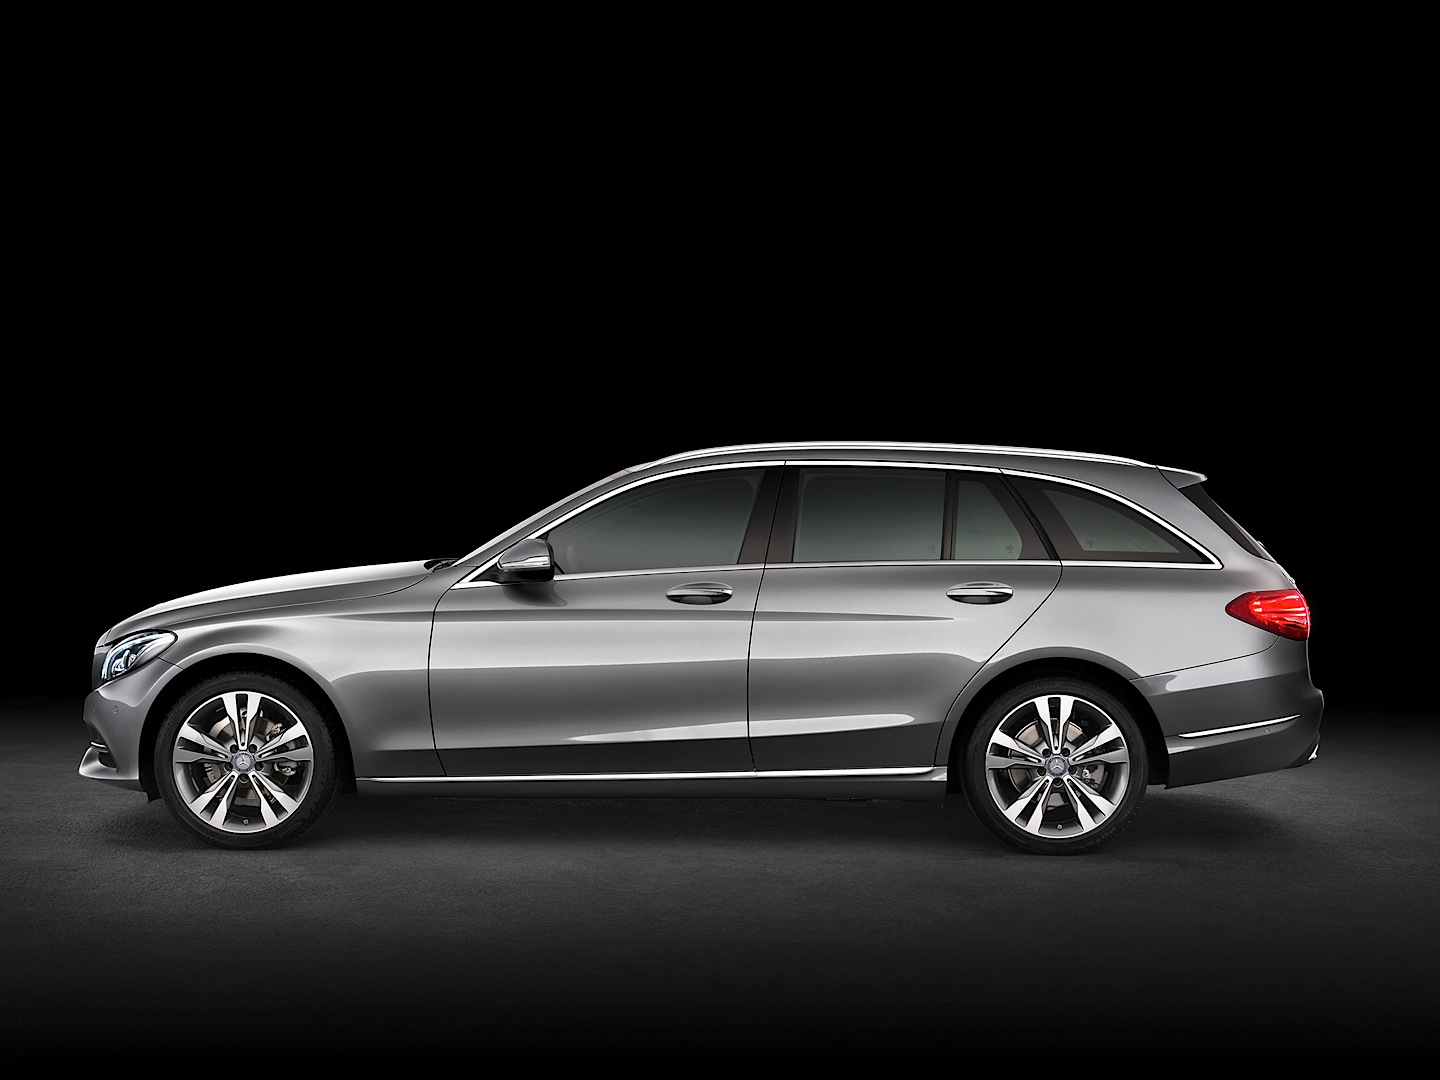 C Class T Modell S205 Starting Prices Revealed Autoevolution